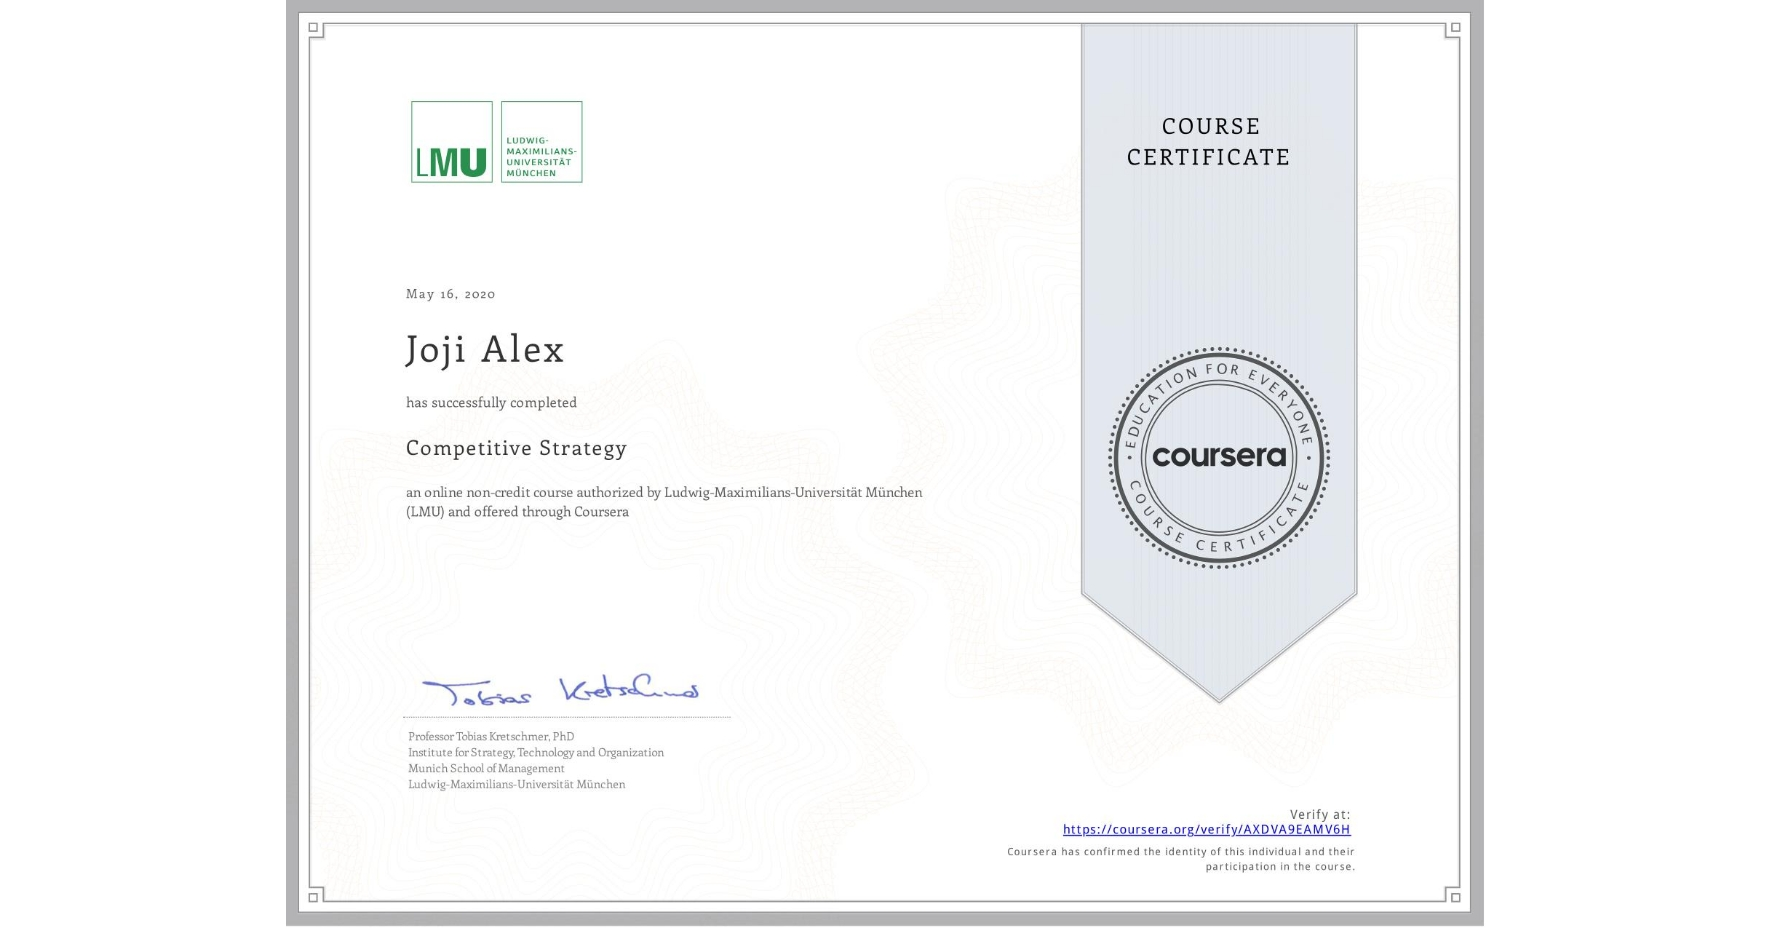 View certificate for Joji Alex, Competitive Strategy, an online non-credit course authorized by Ludwig-Maximilians-Universität München (LMU) and offered through Coursera